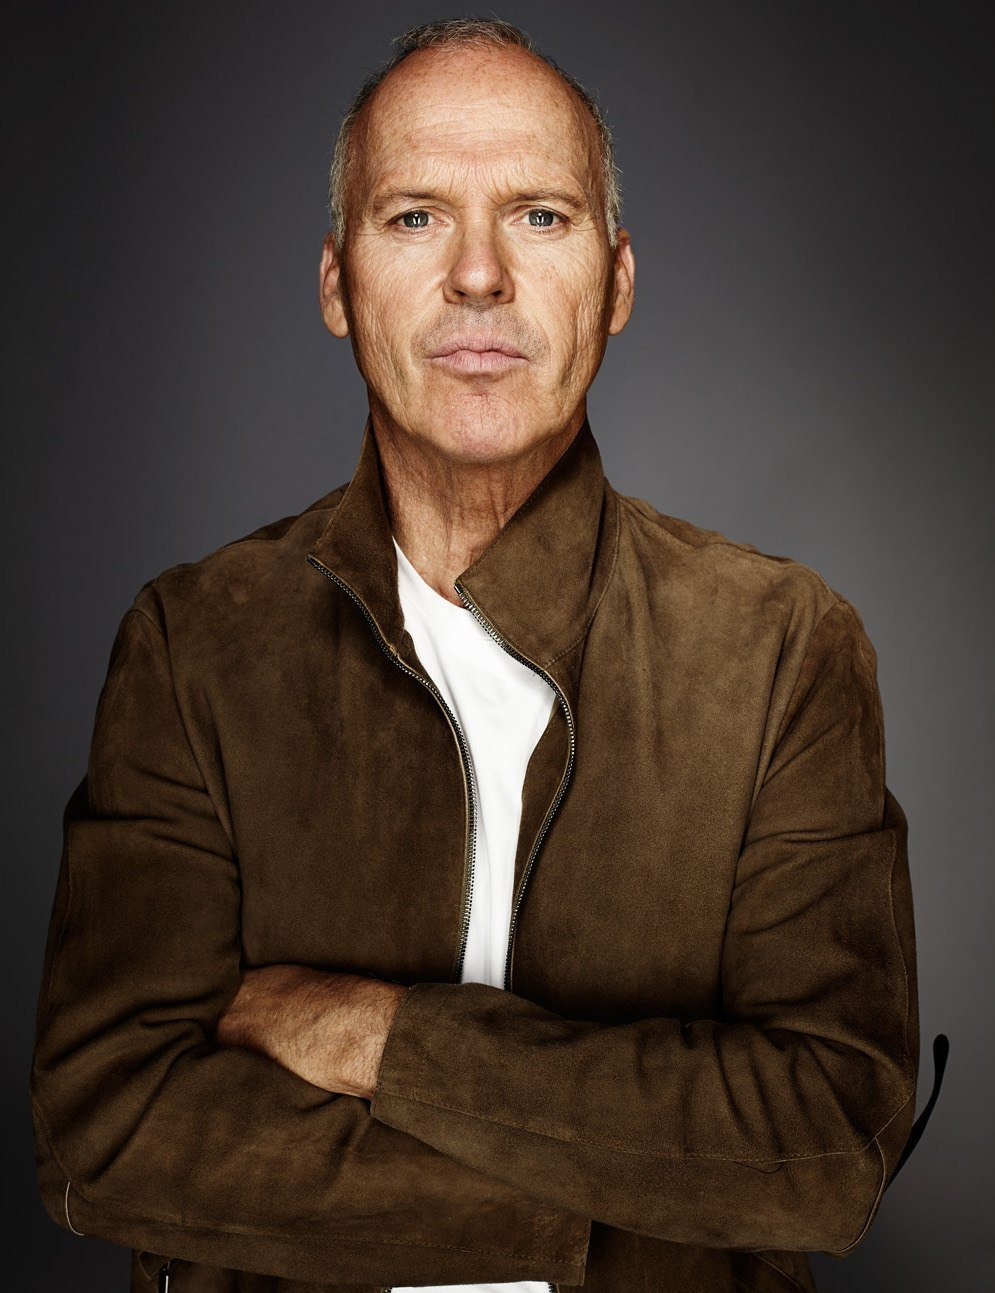 12 2 20 Facts You Probably Didn't Know About Michael Keaton